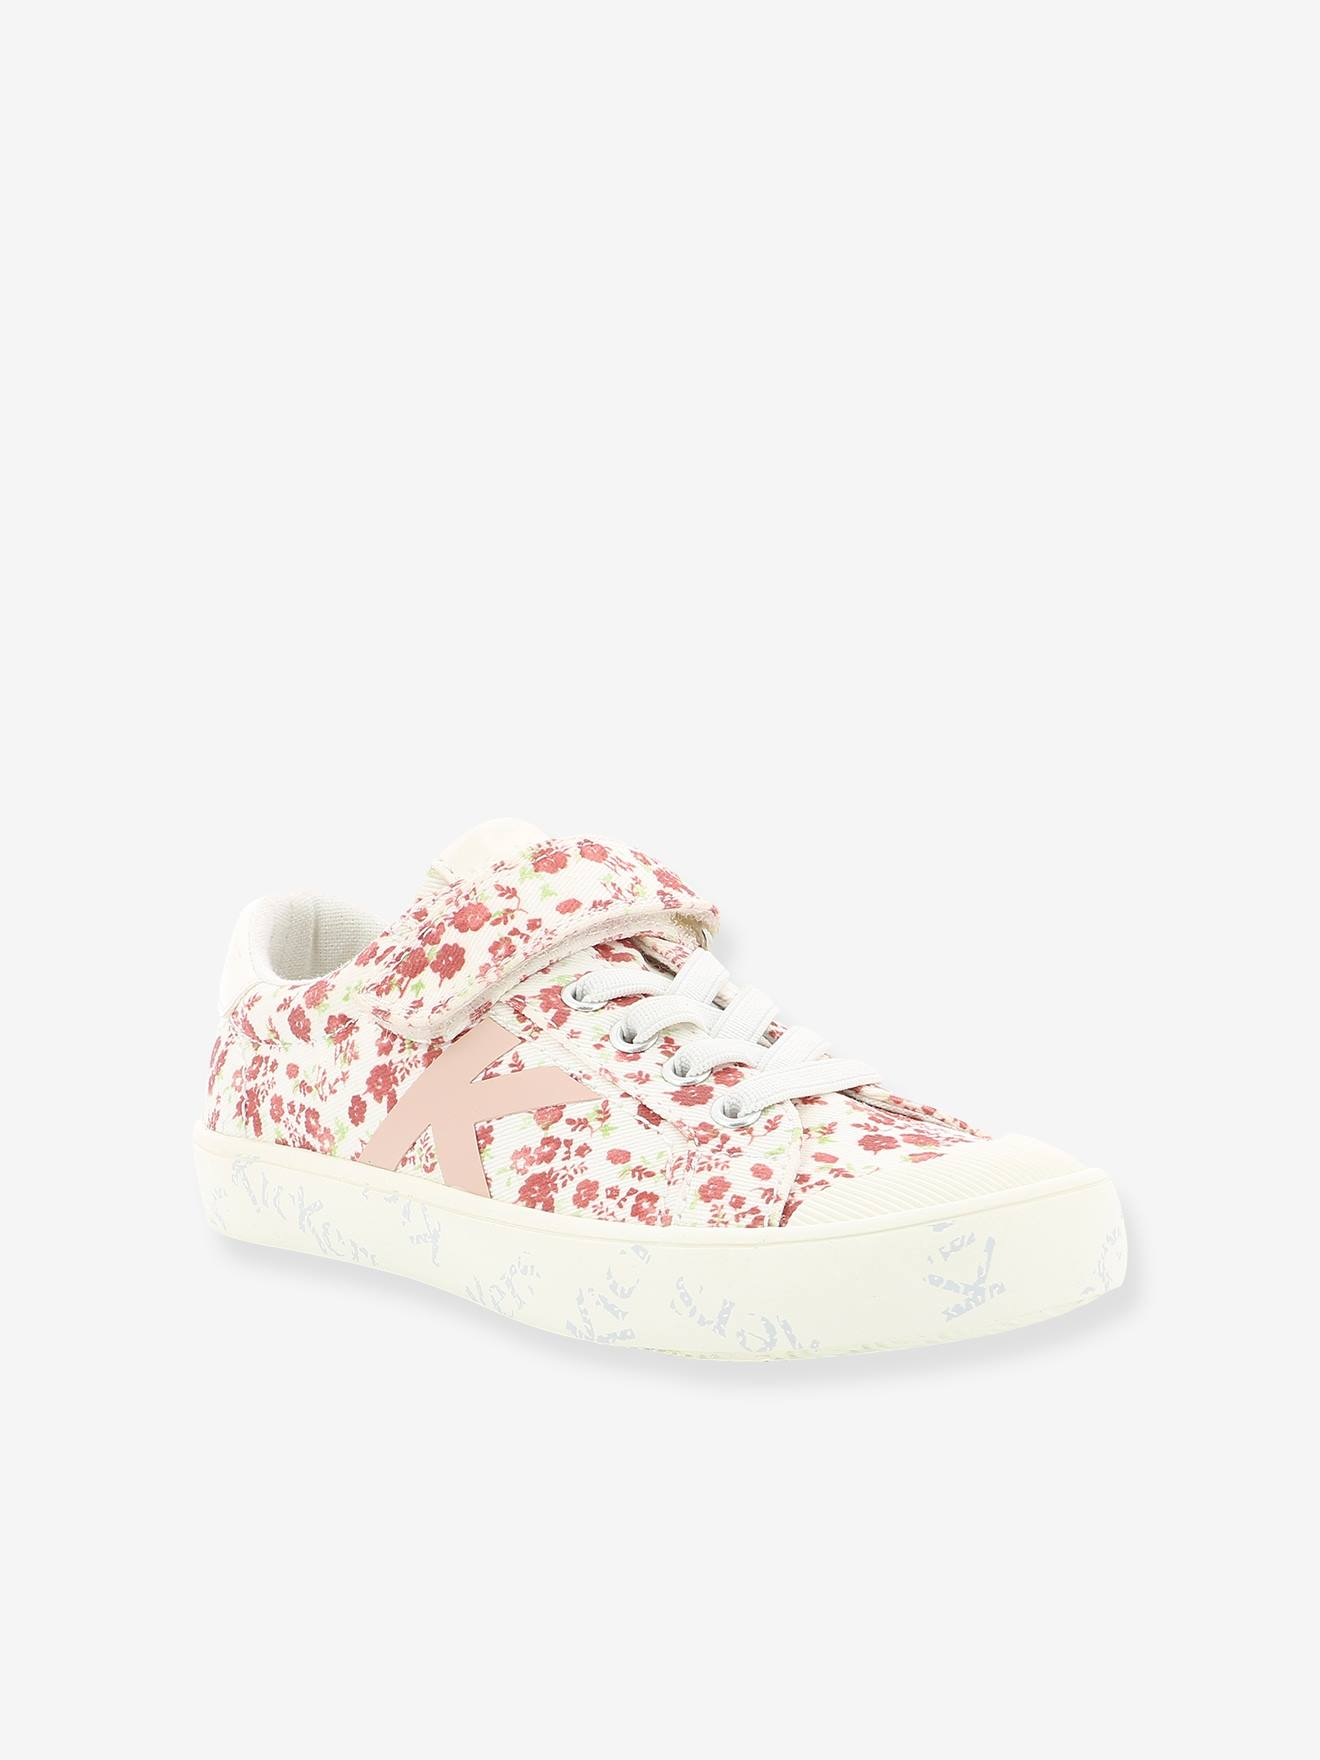 Baskets Sneakers fille Gody KICKERS® blanc fleuri, Chaussures